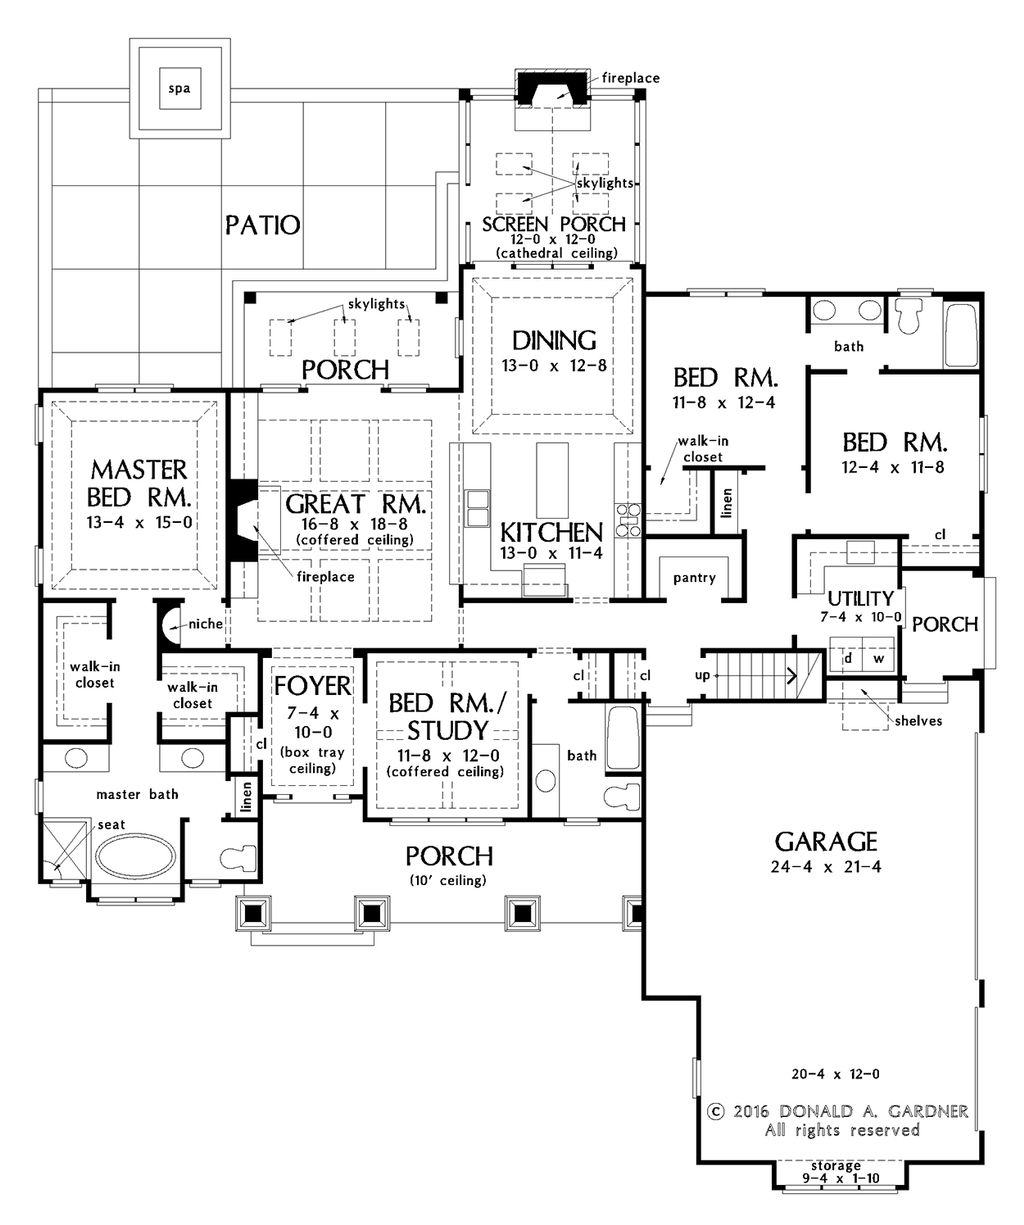 craftsman style house plan 4 beds 3 baths 2239 sq ft plan 929 [ 1024 x 1225 Pixel ]